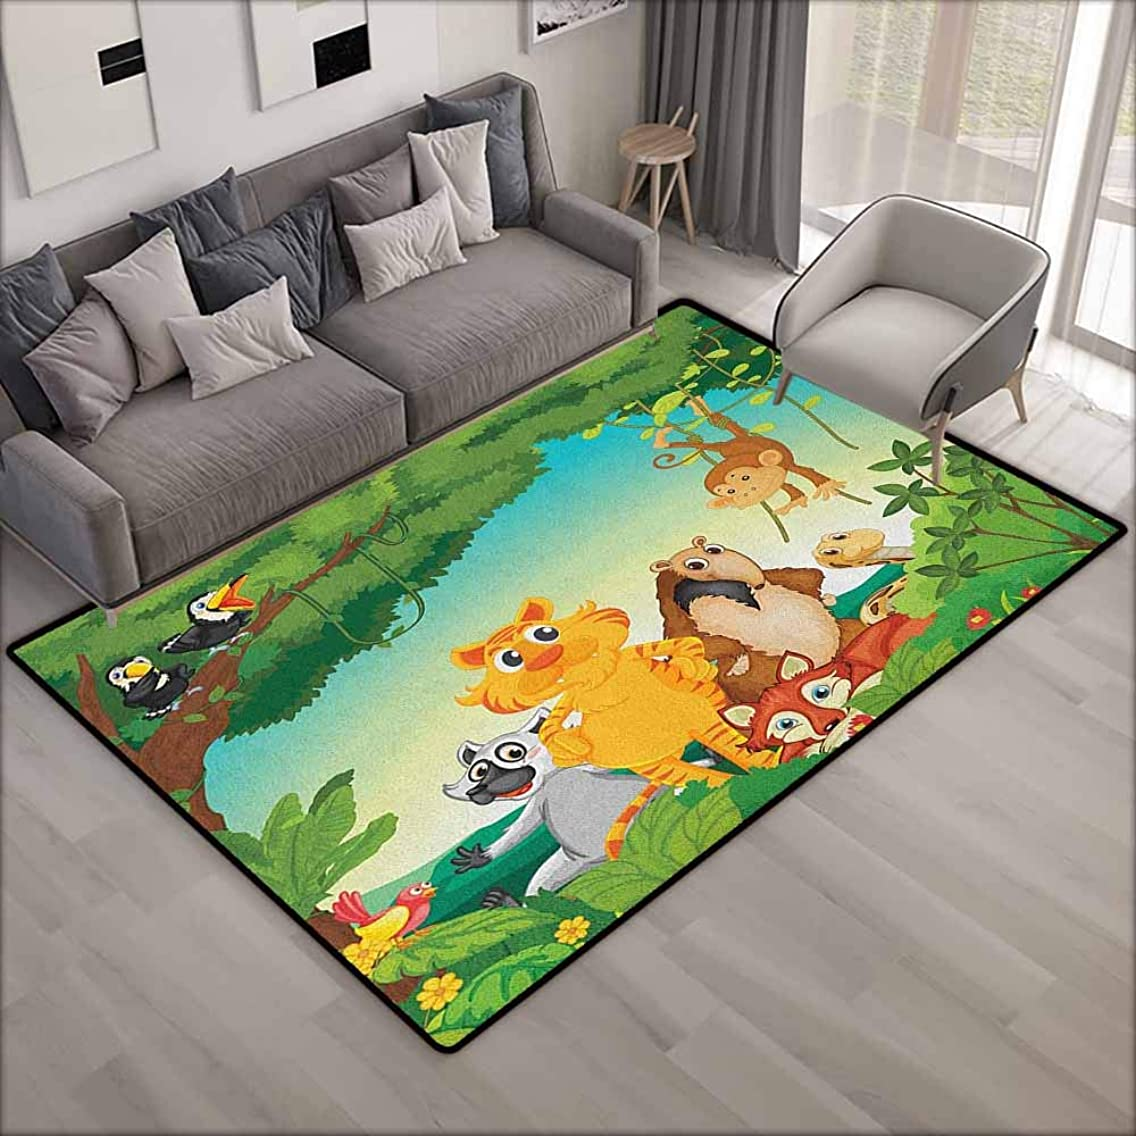 Kids Rug,Zoo Forest Scene with Different Animals Habitat Jungle Tropical Environment Kids Cartoon,Ideal Gift for Children,5'6